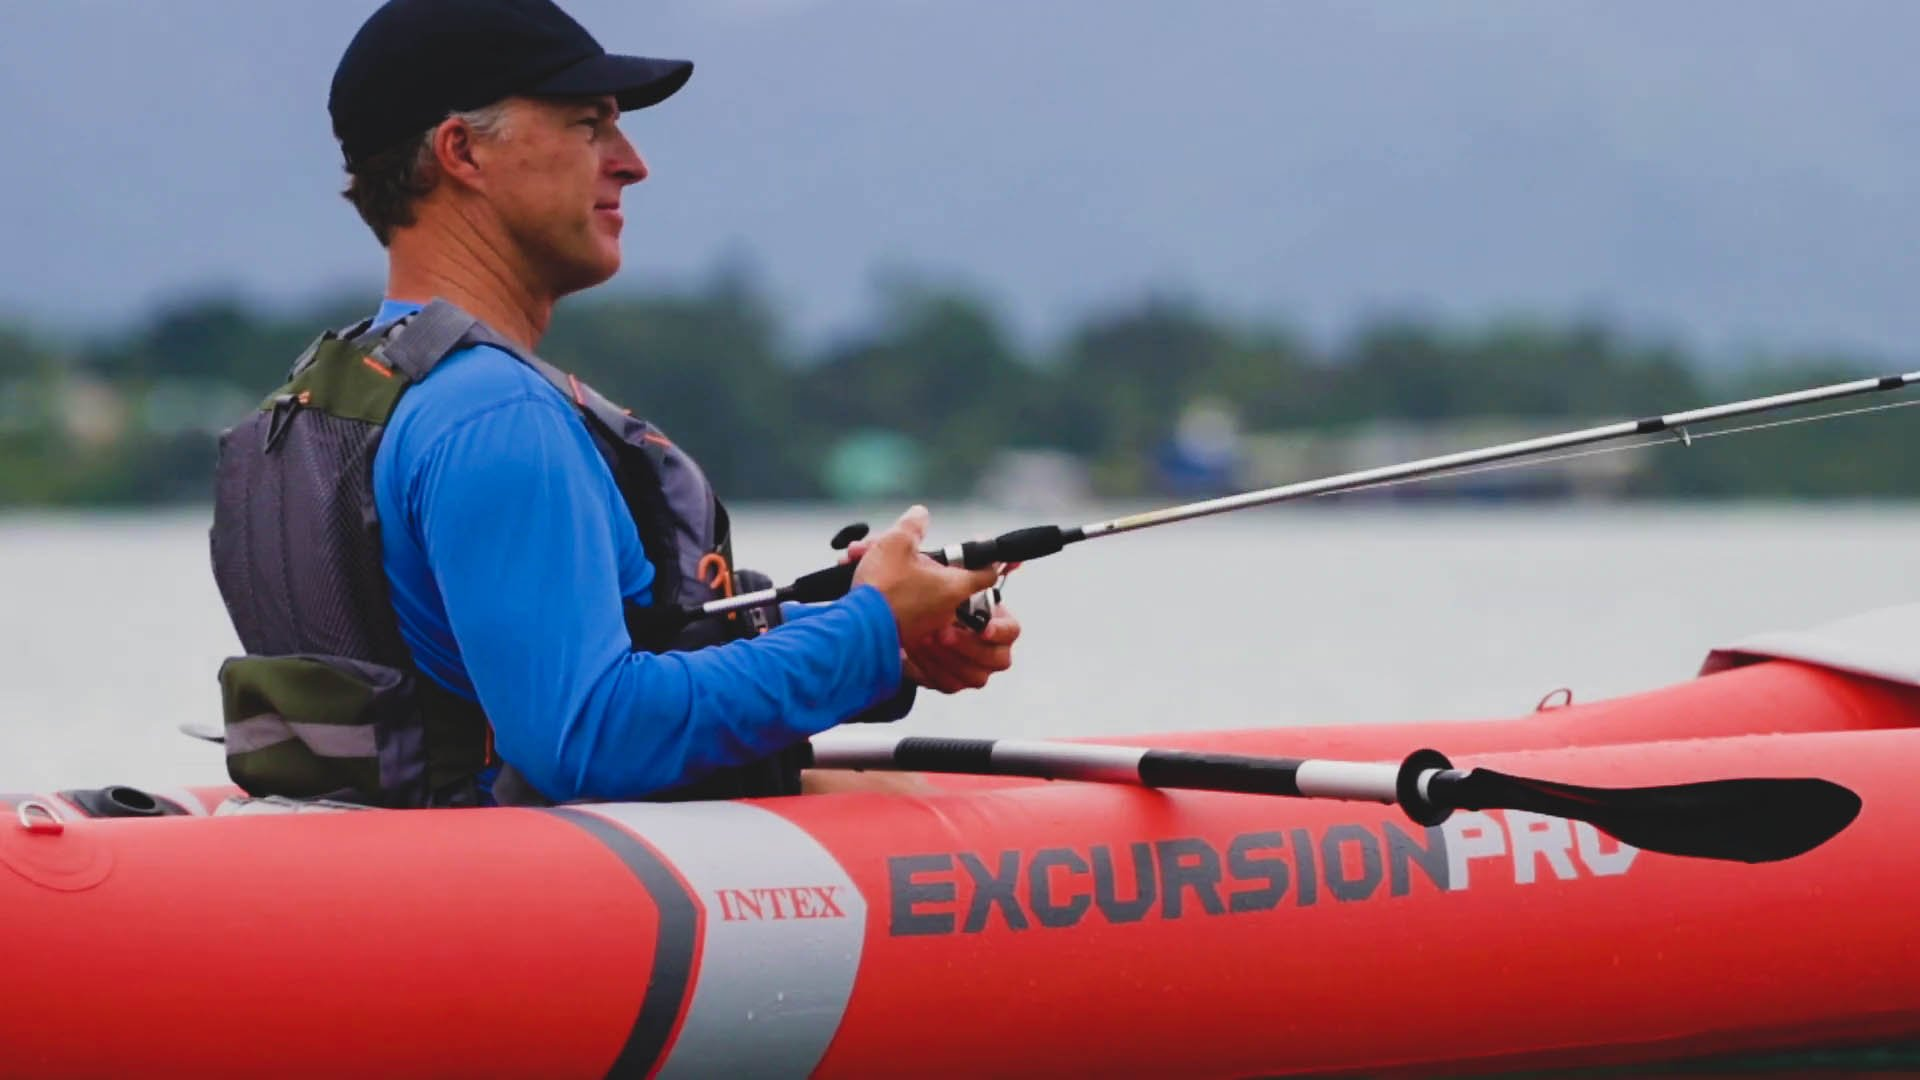 Fishing on Intex Excursion Pro Kayak